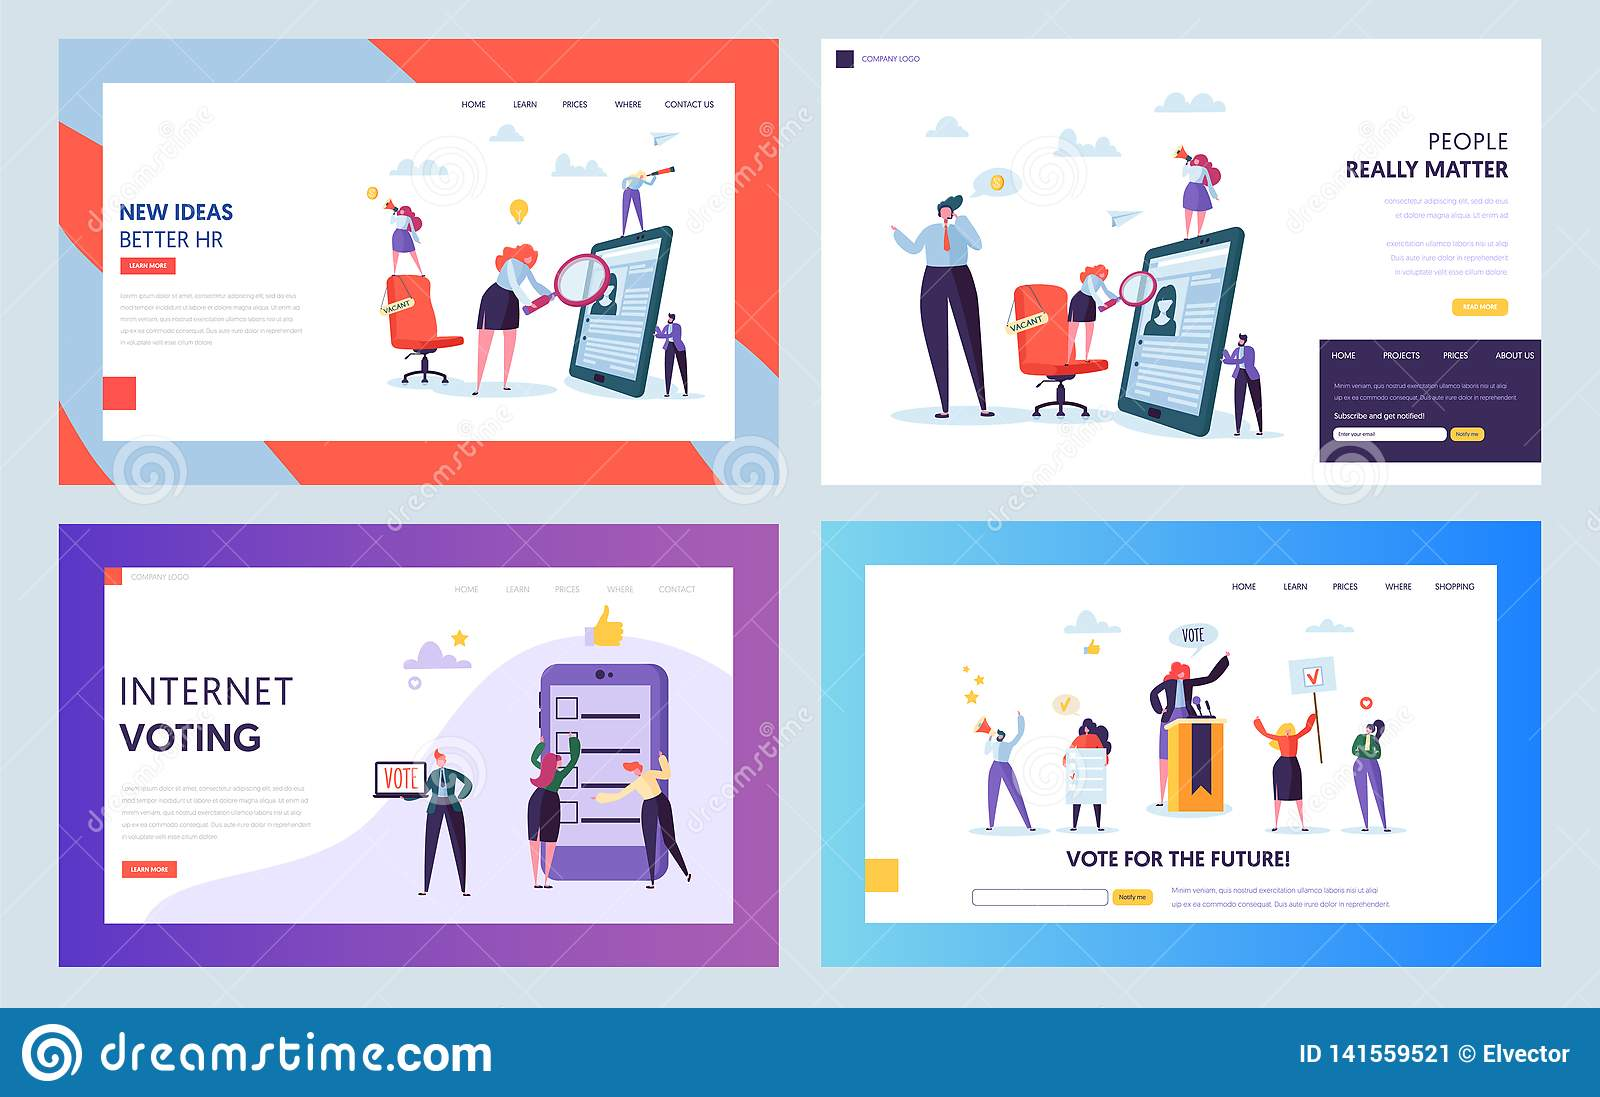 Recruitment Job Interview Concept Landing Page. Vacant Sign on Chair. Male and Female Character Looking for Candidate Website